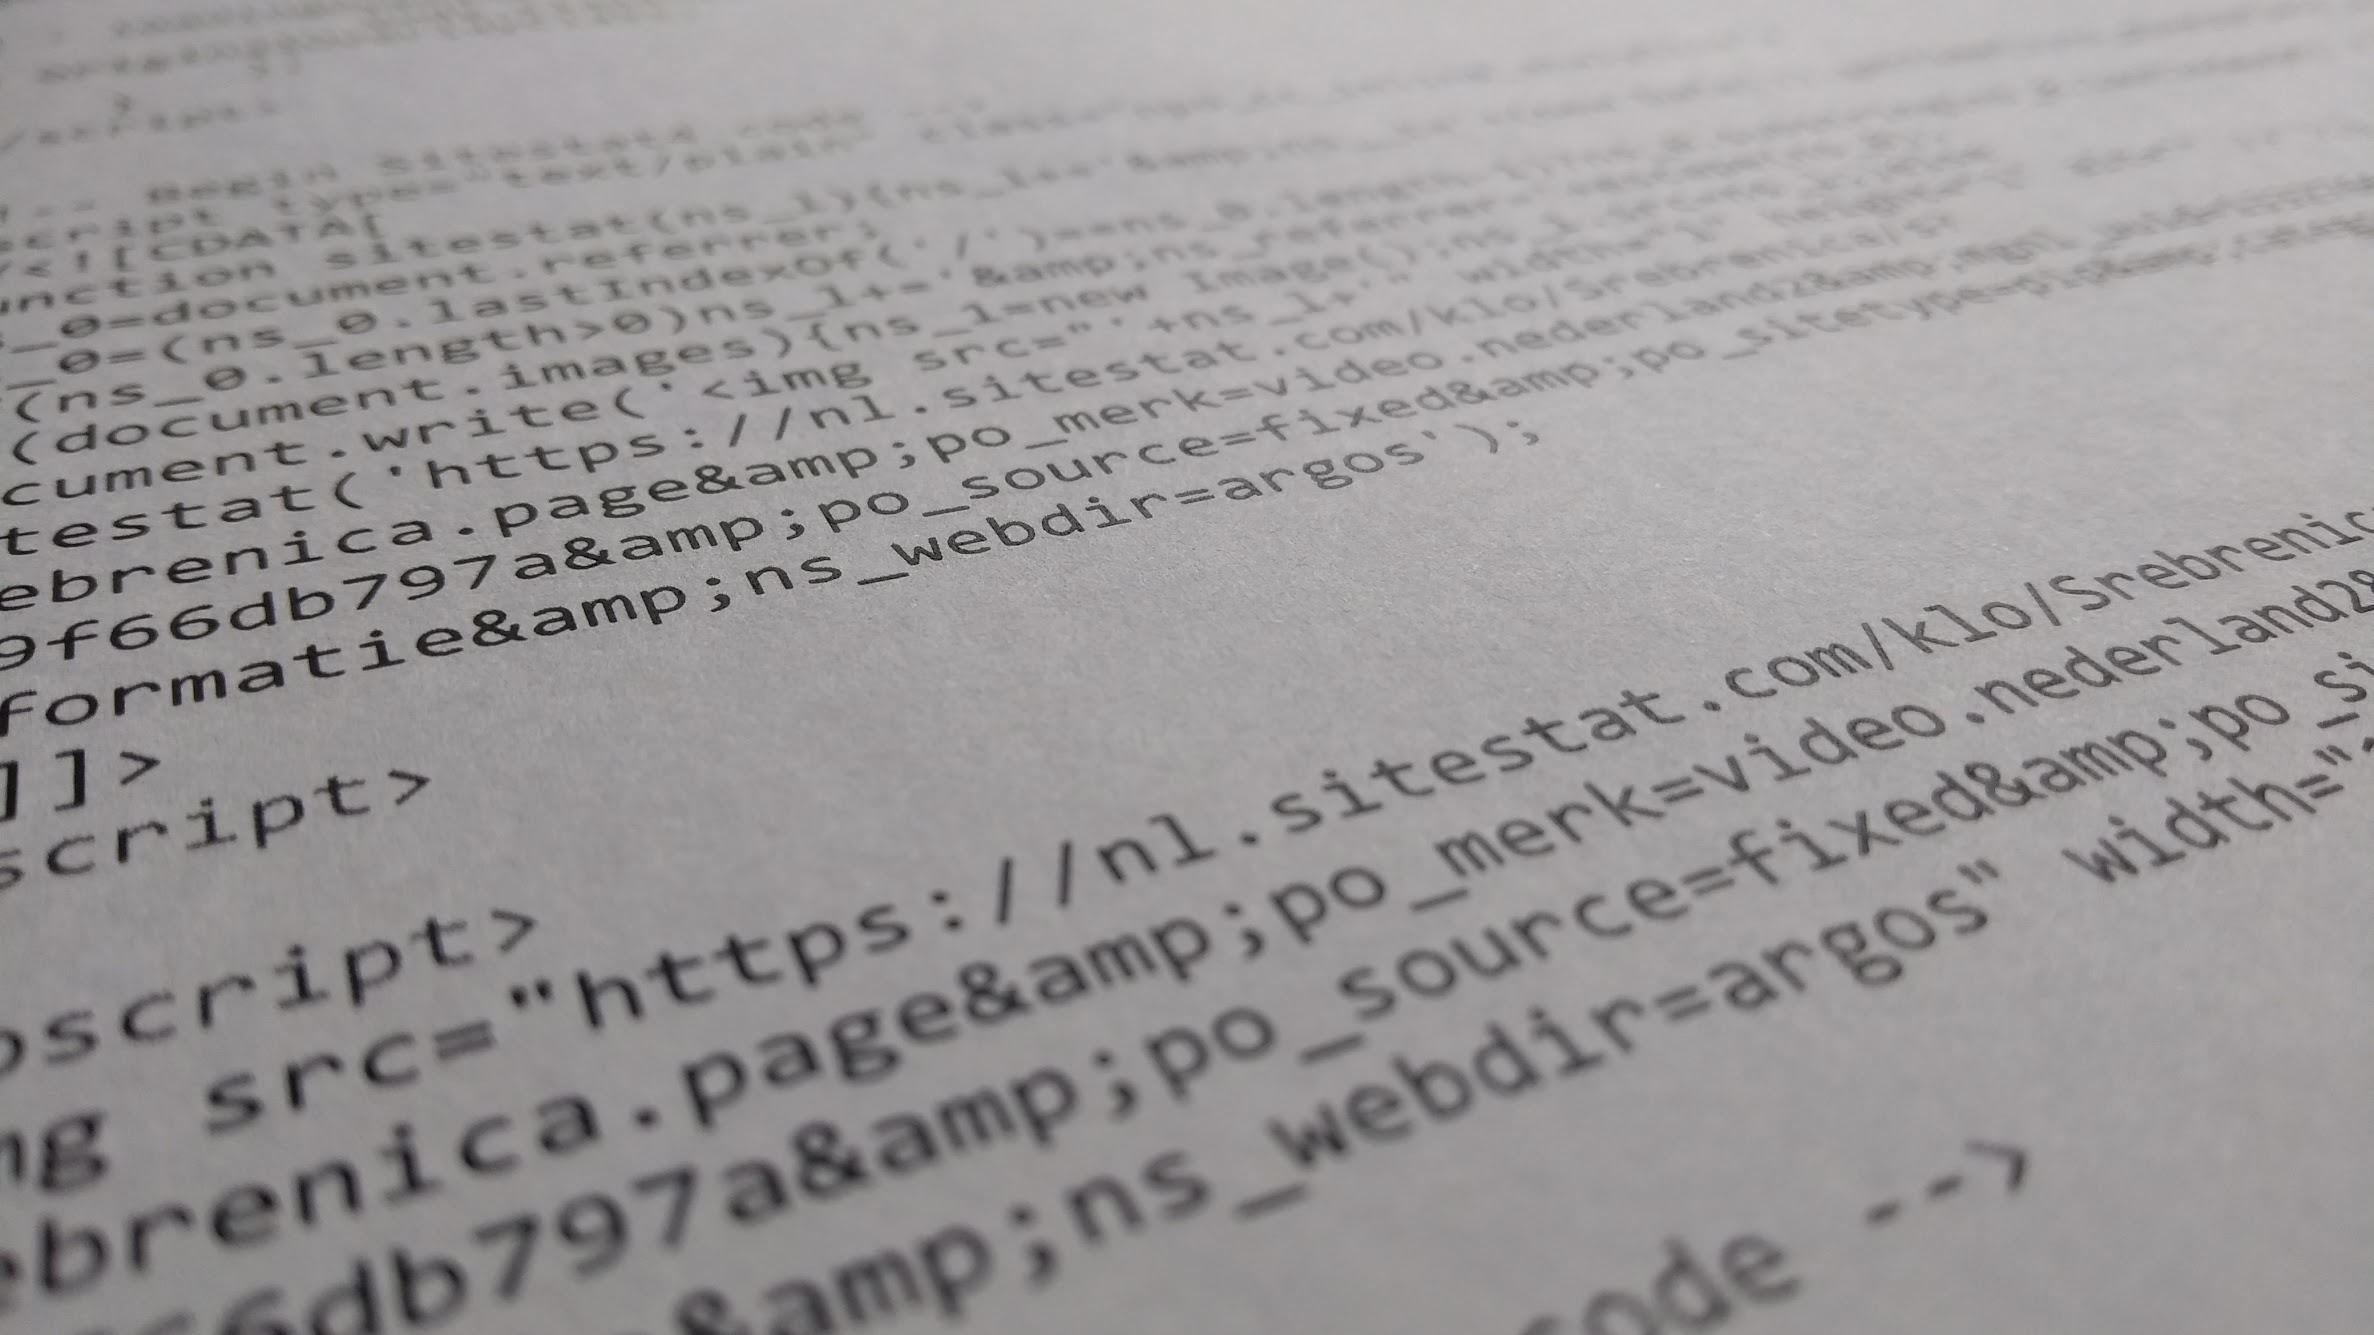 Tips for making websites future proof